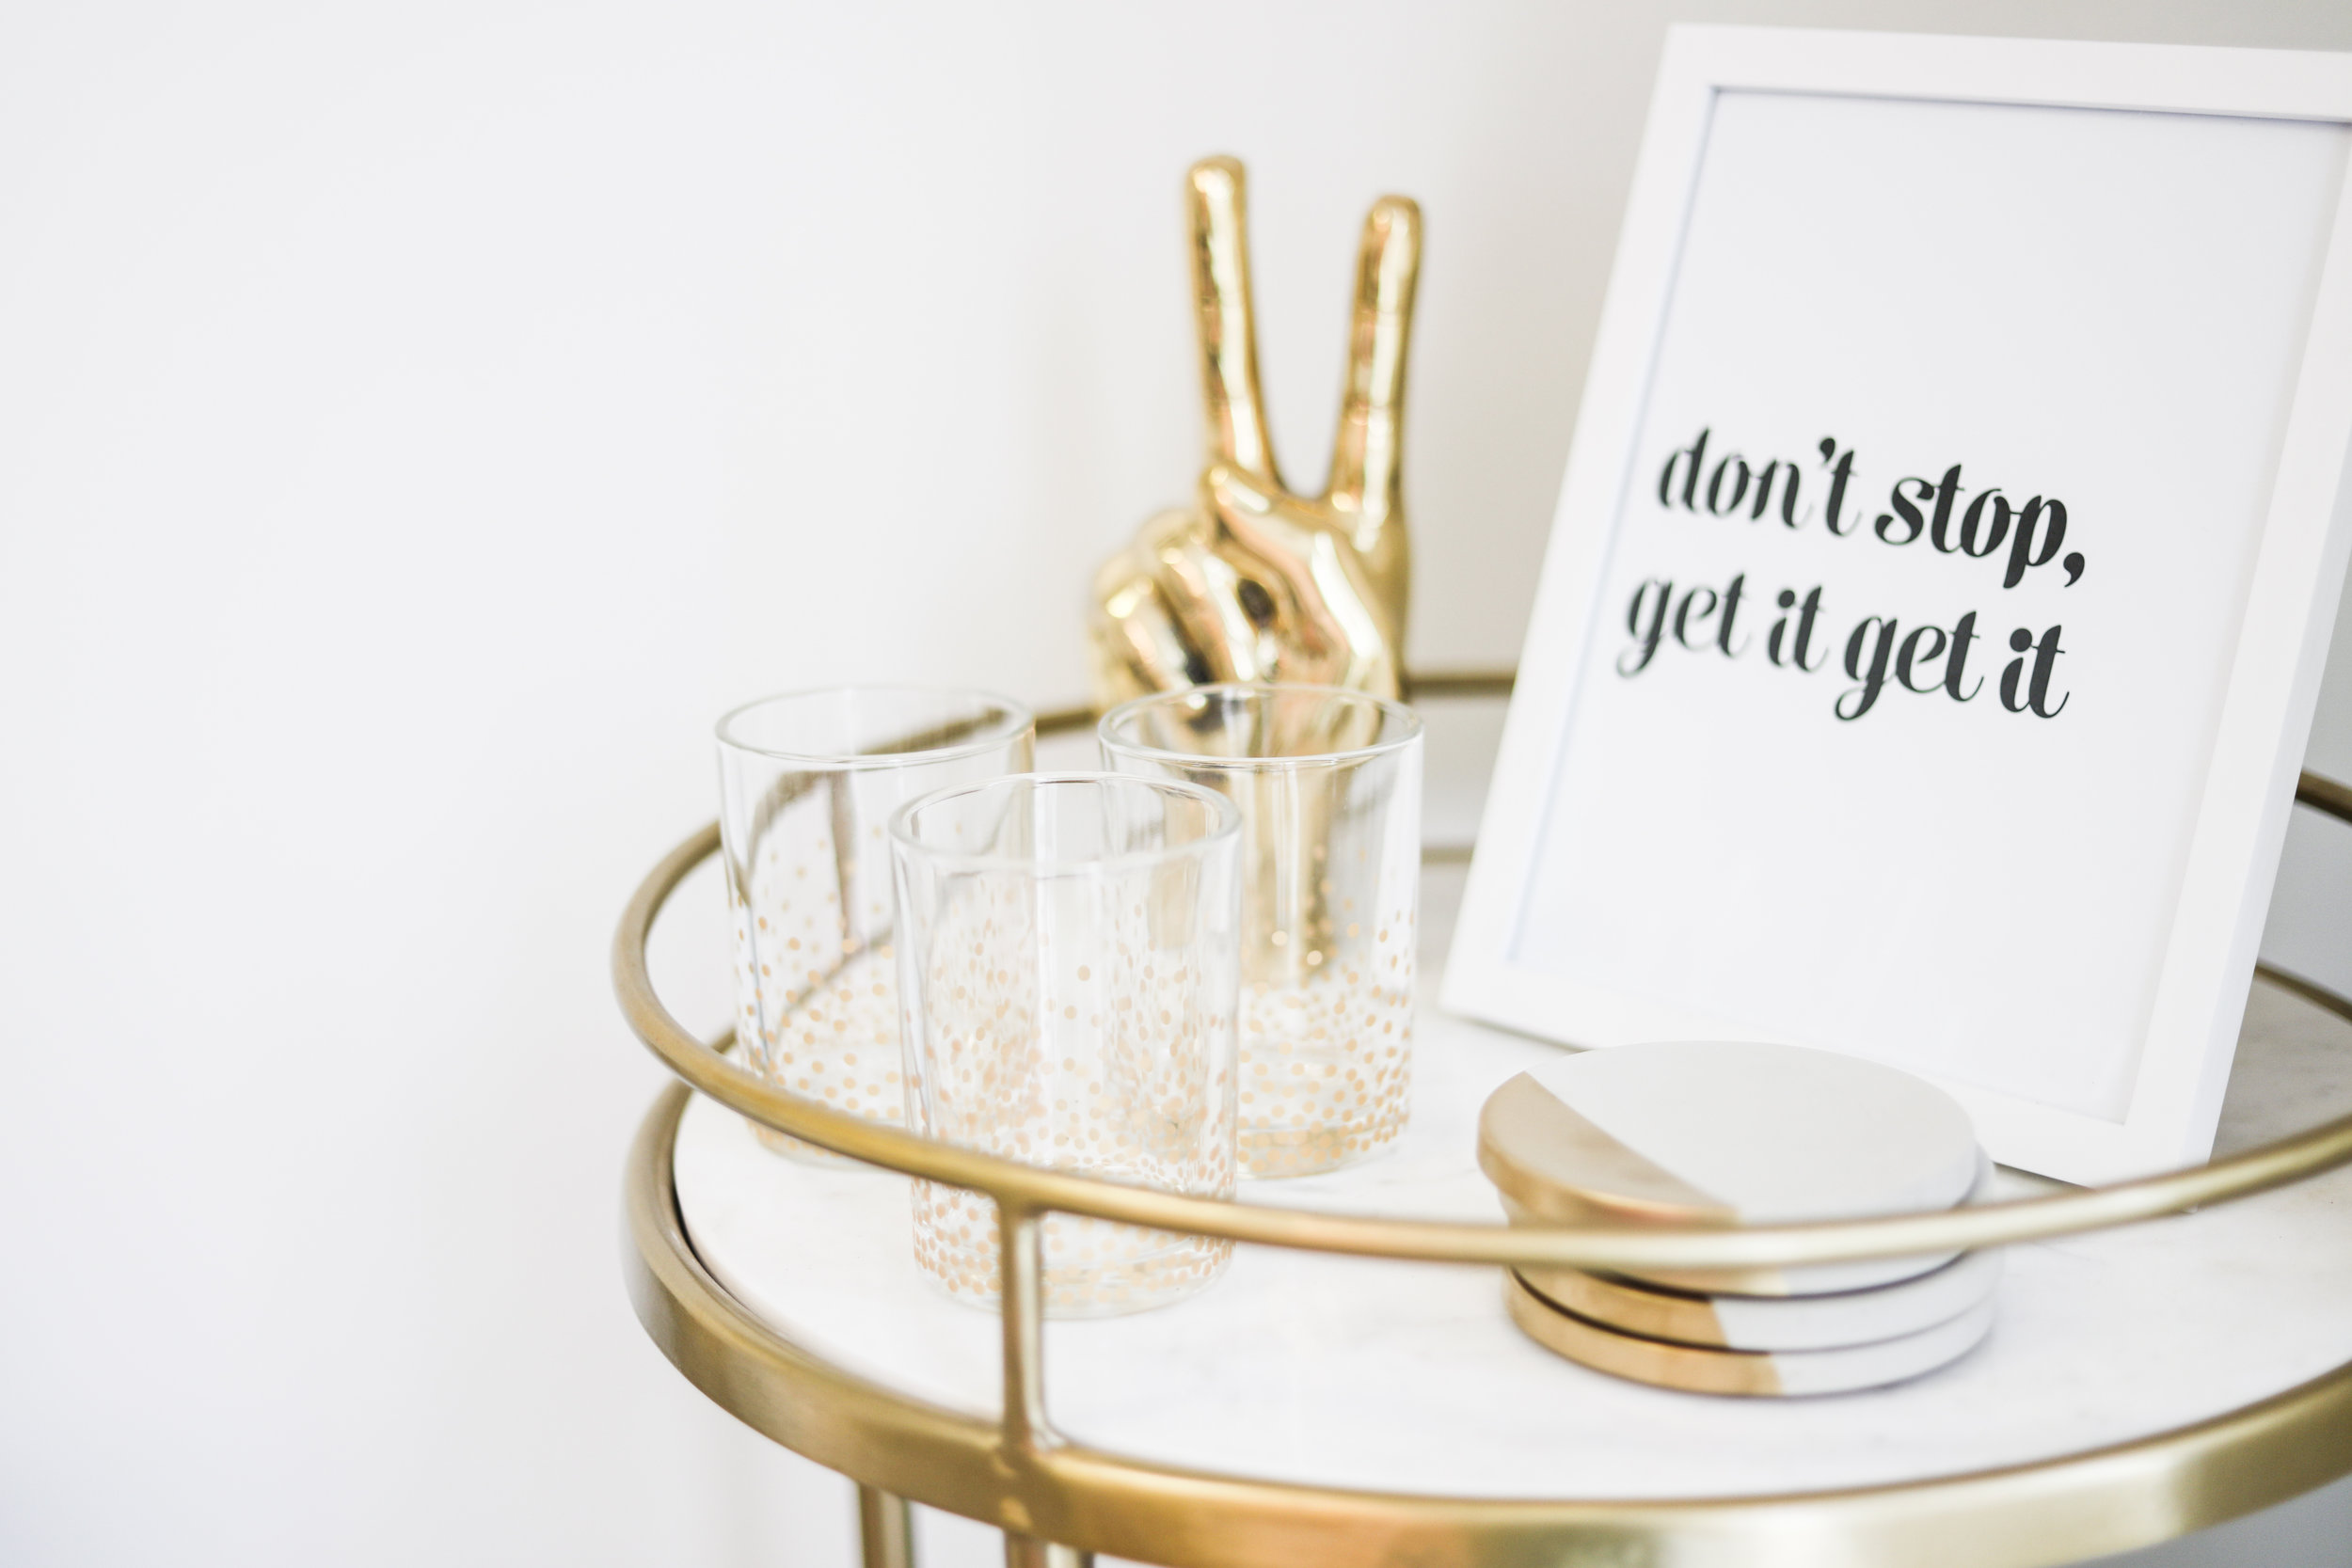 Bar Cart  (similar option  here )  |   Peace Sign   |   Graphic Prints   |   Concrete Coasters